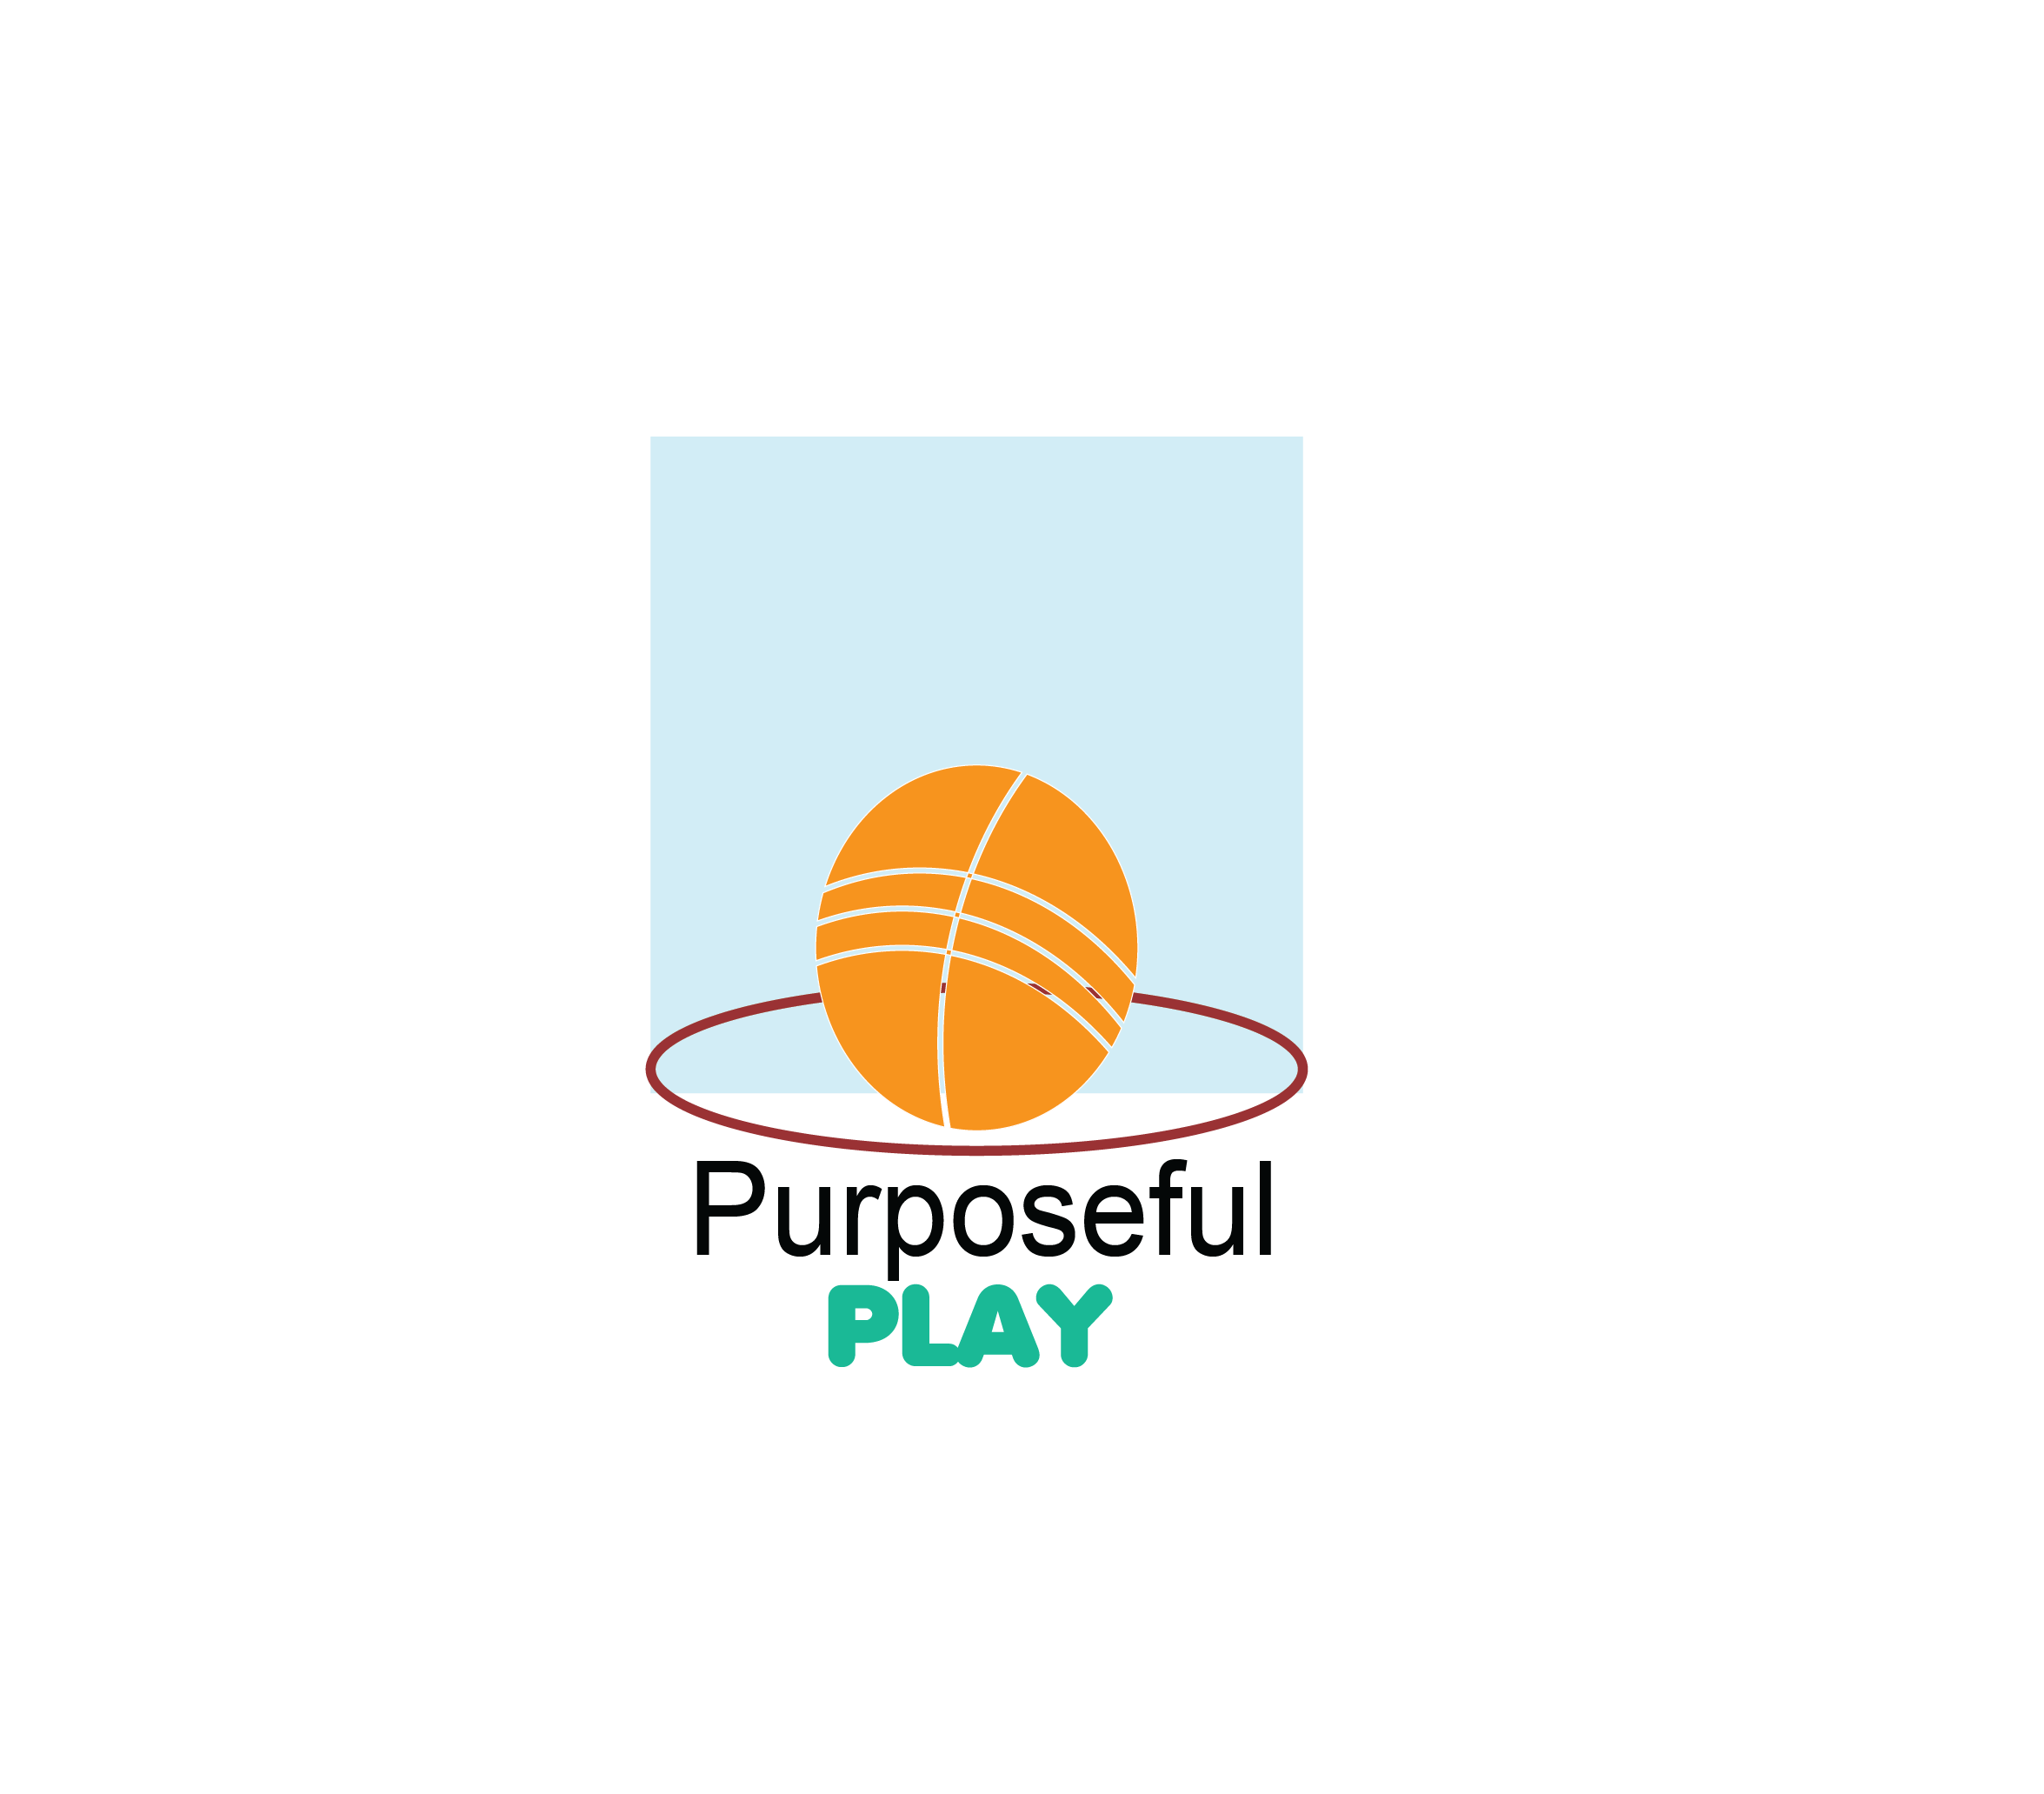 Logo Design by aanygraphic - Entry No. 38 in the Logo Design Contest Purposeful PLAY Logo Design.